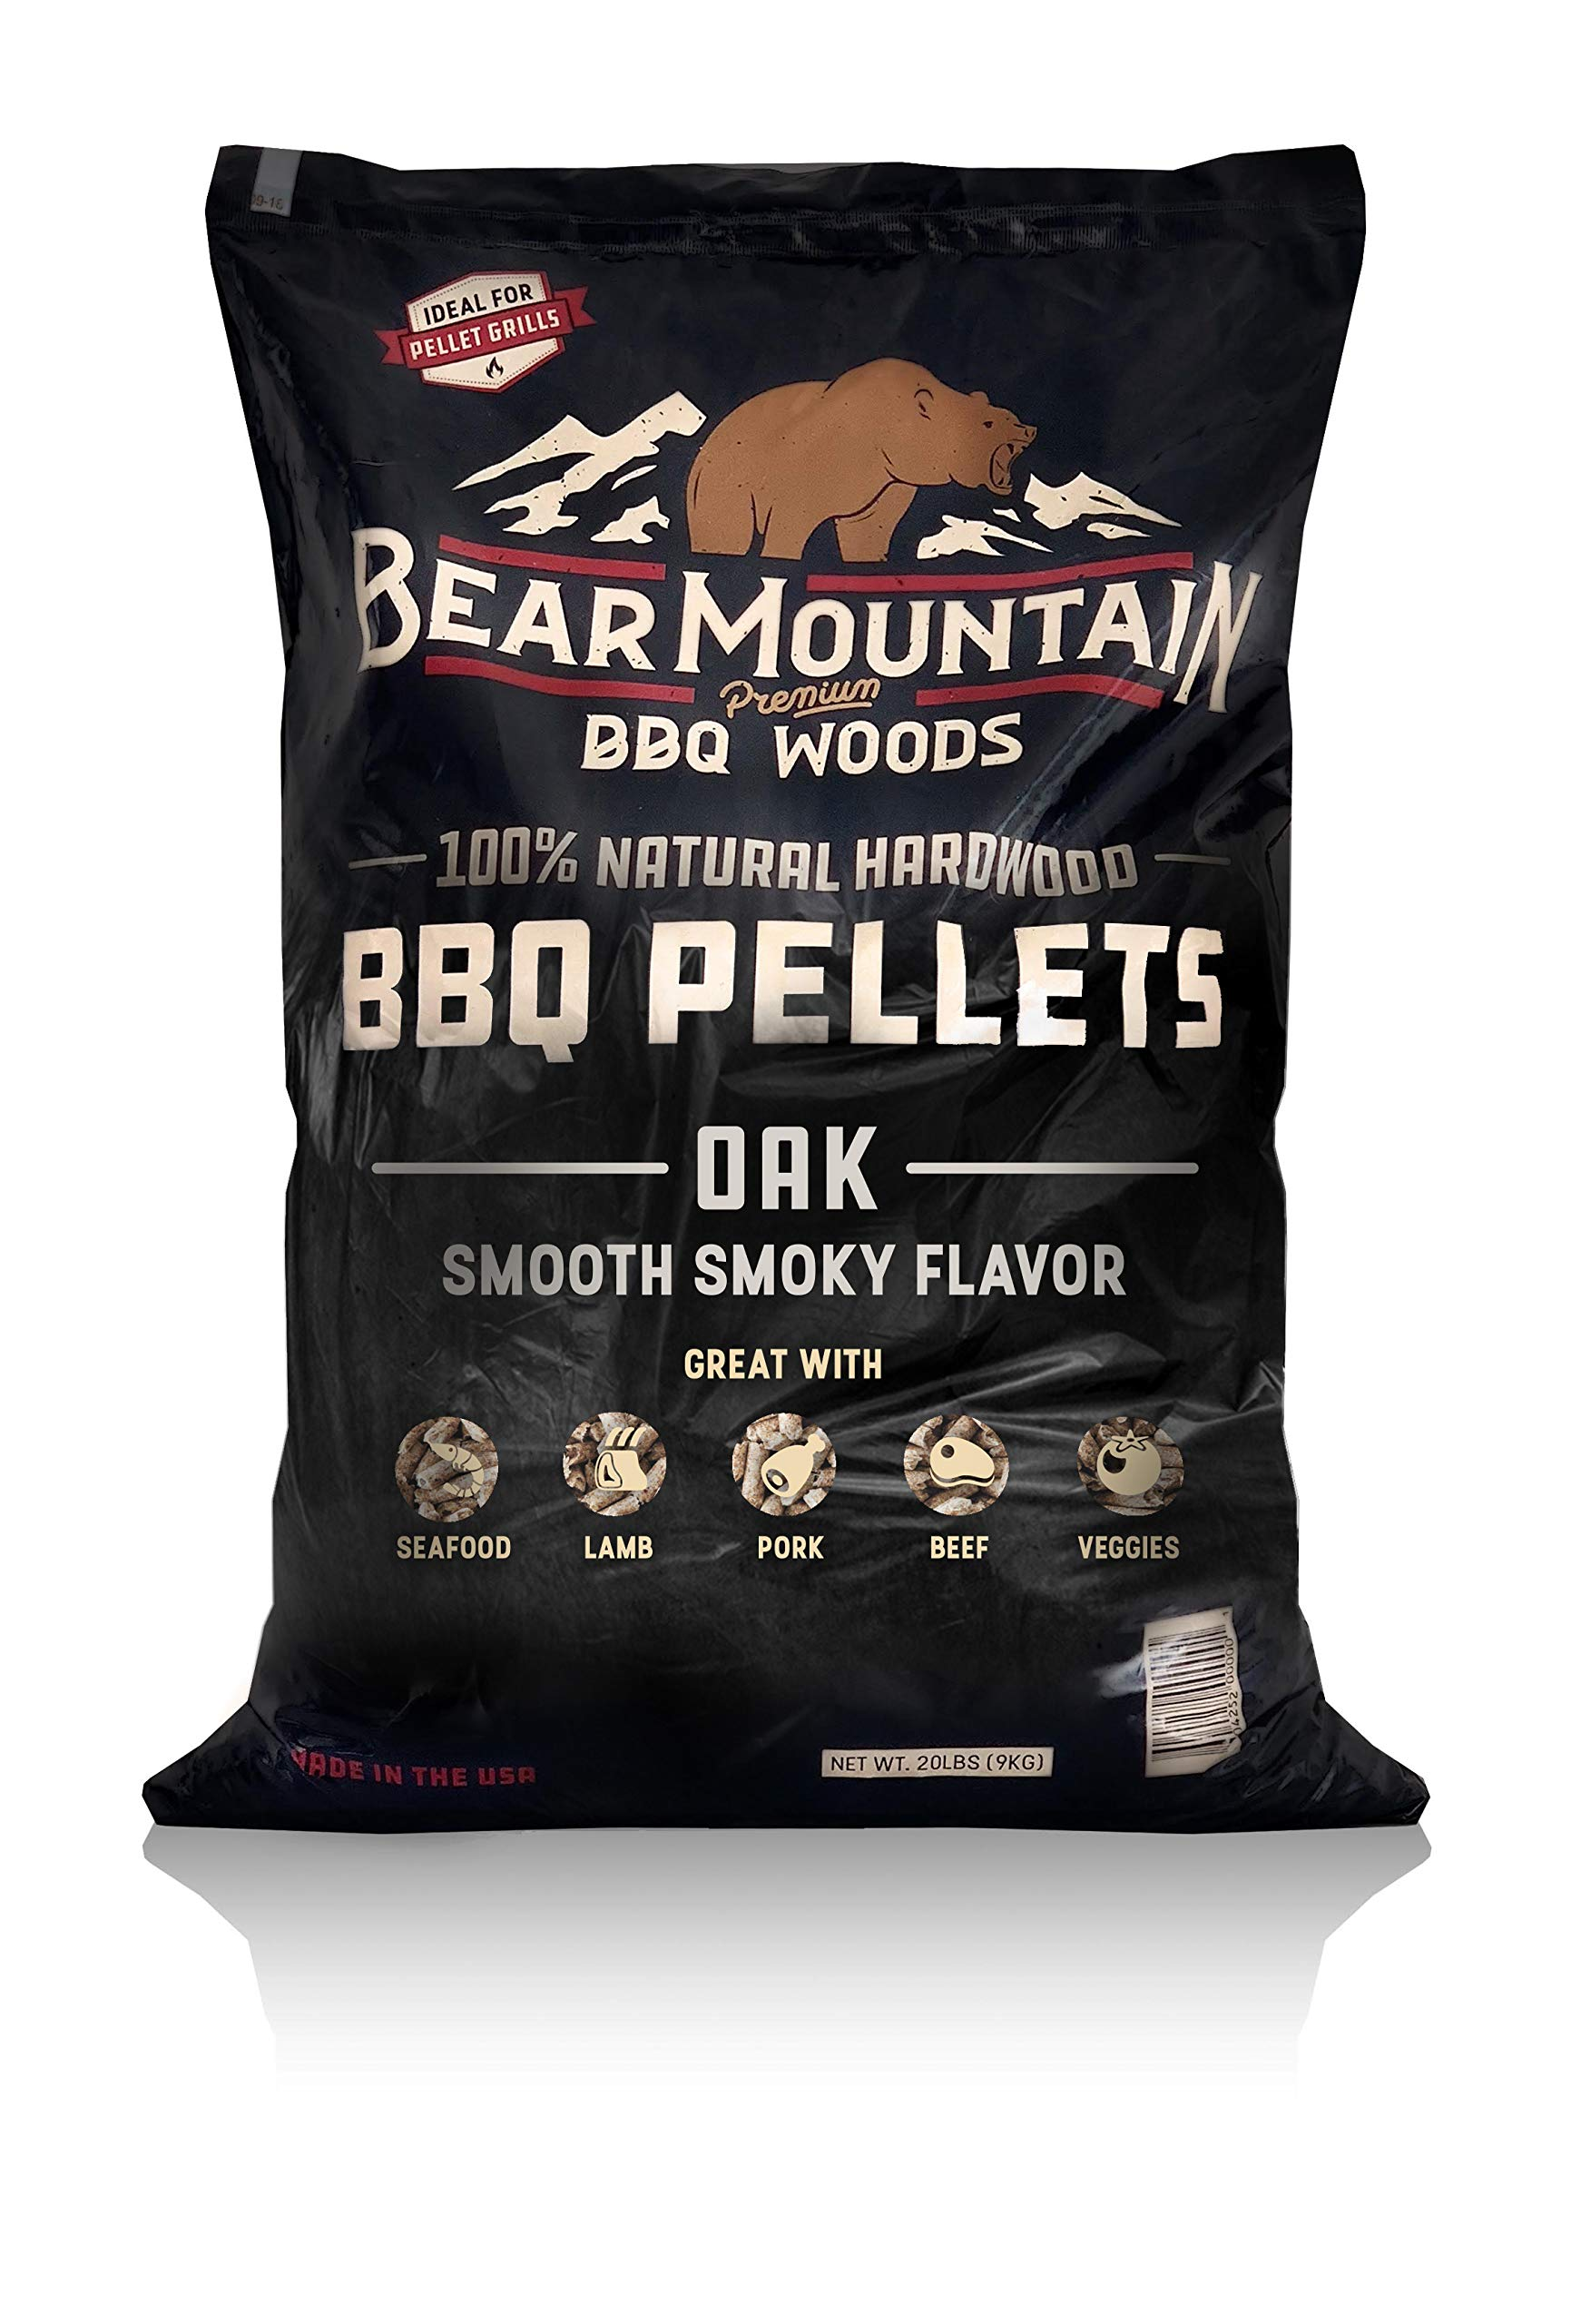 Bear Mountain BBQ 100% All-Natural Hardwood Pellets - Oak (20 lb. Bag) Perfect for Pellet Smokers, or Any Outdoor Grill   Rich, Smoky Wood-Fired Flavor